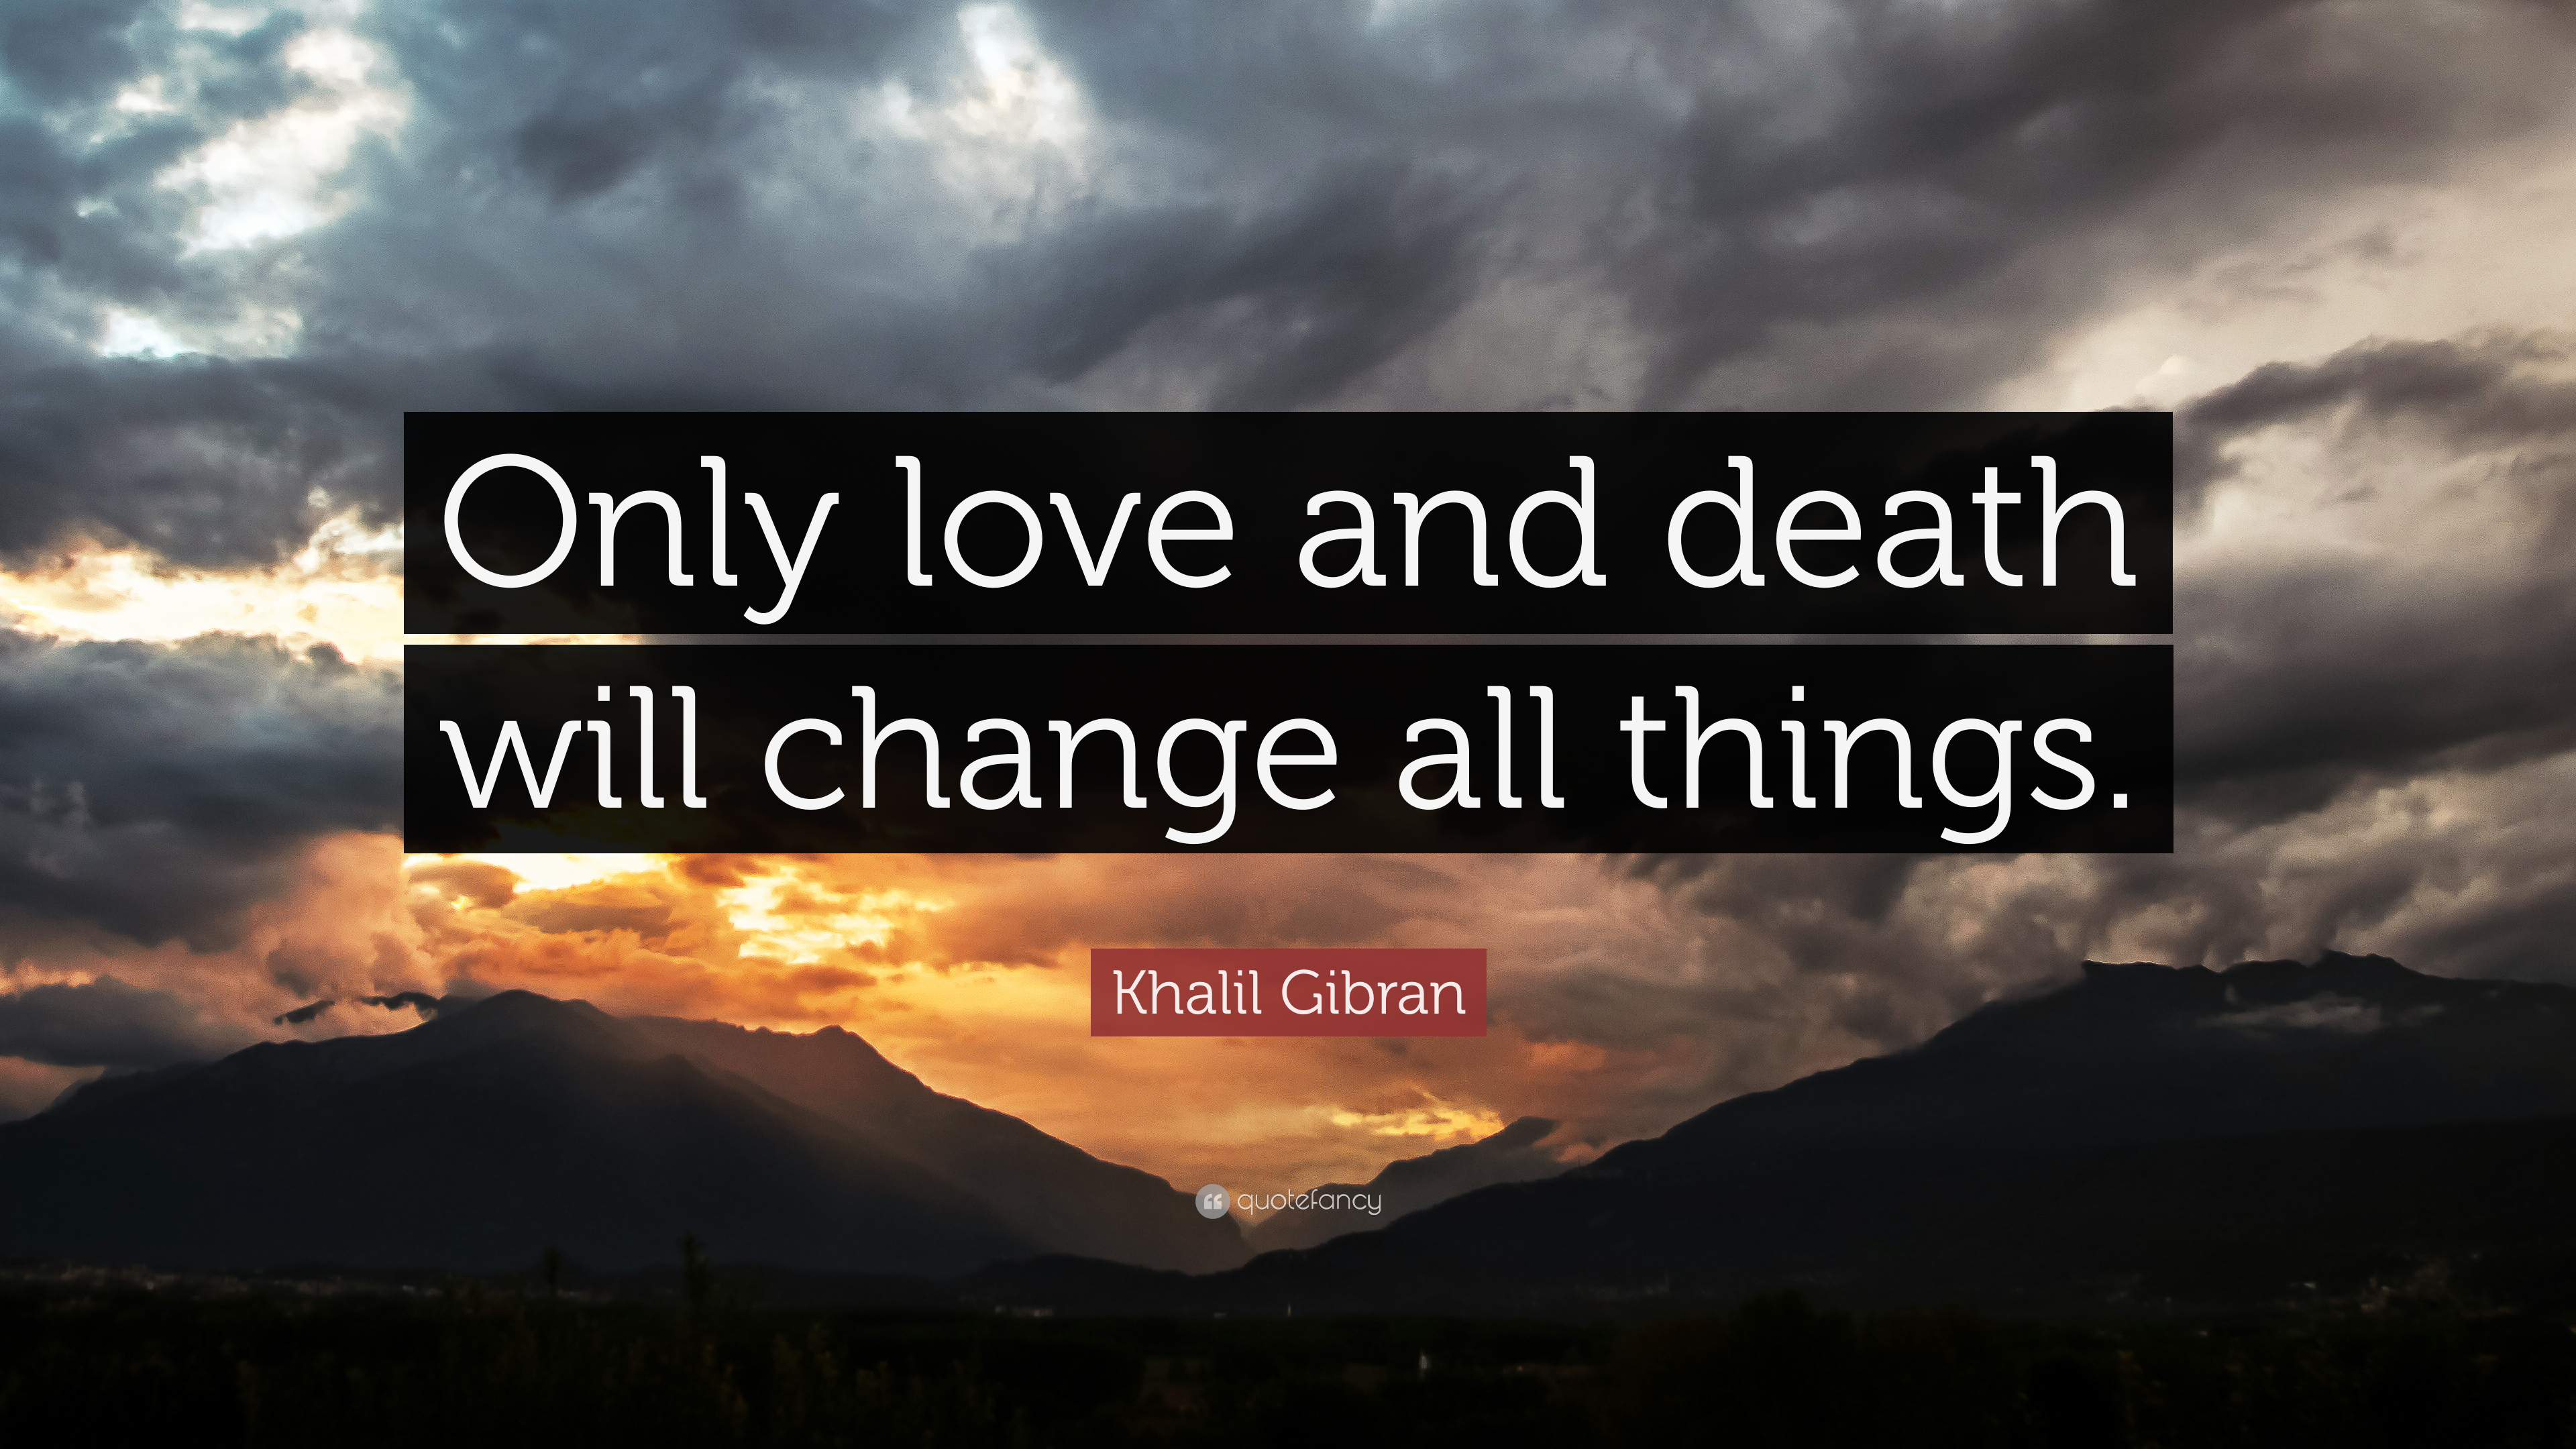 Quotes About Love And Death : gibran quotes life love 100 wallpapers 5649 points love quotes love ...